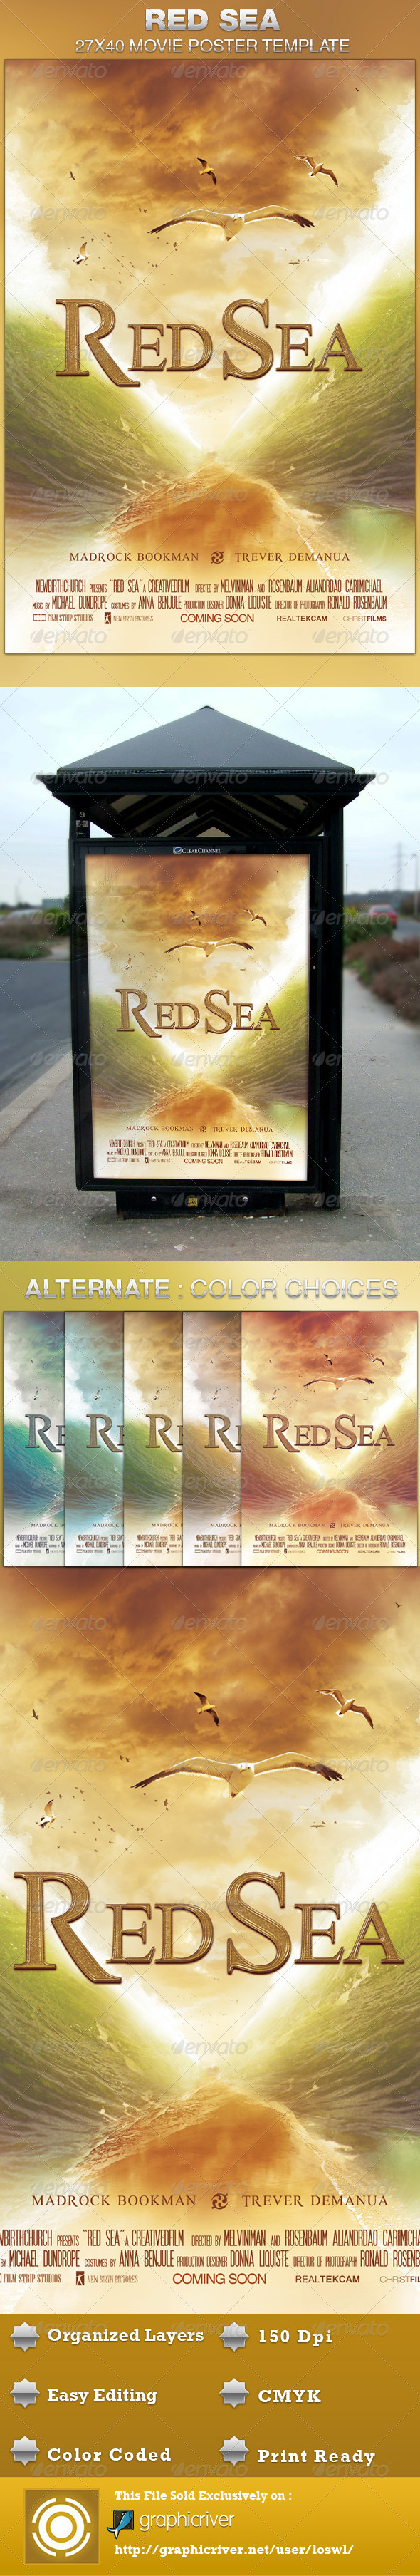 Red Sea Movie Poster Template - Church Flyers